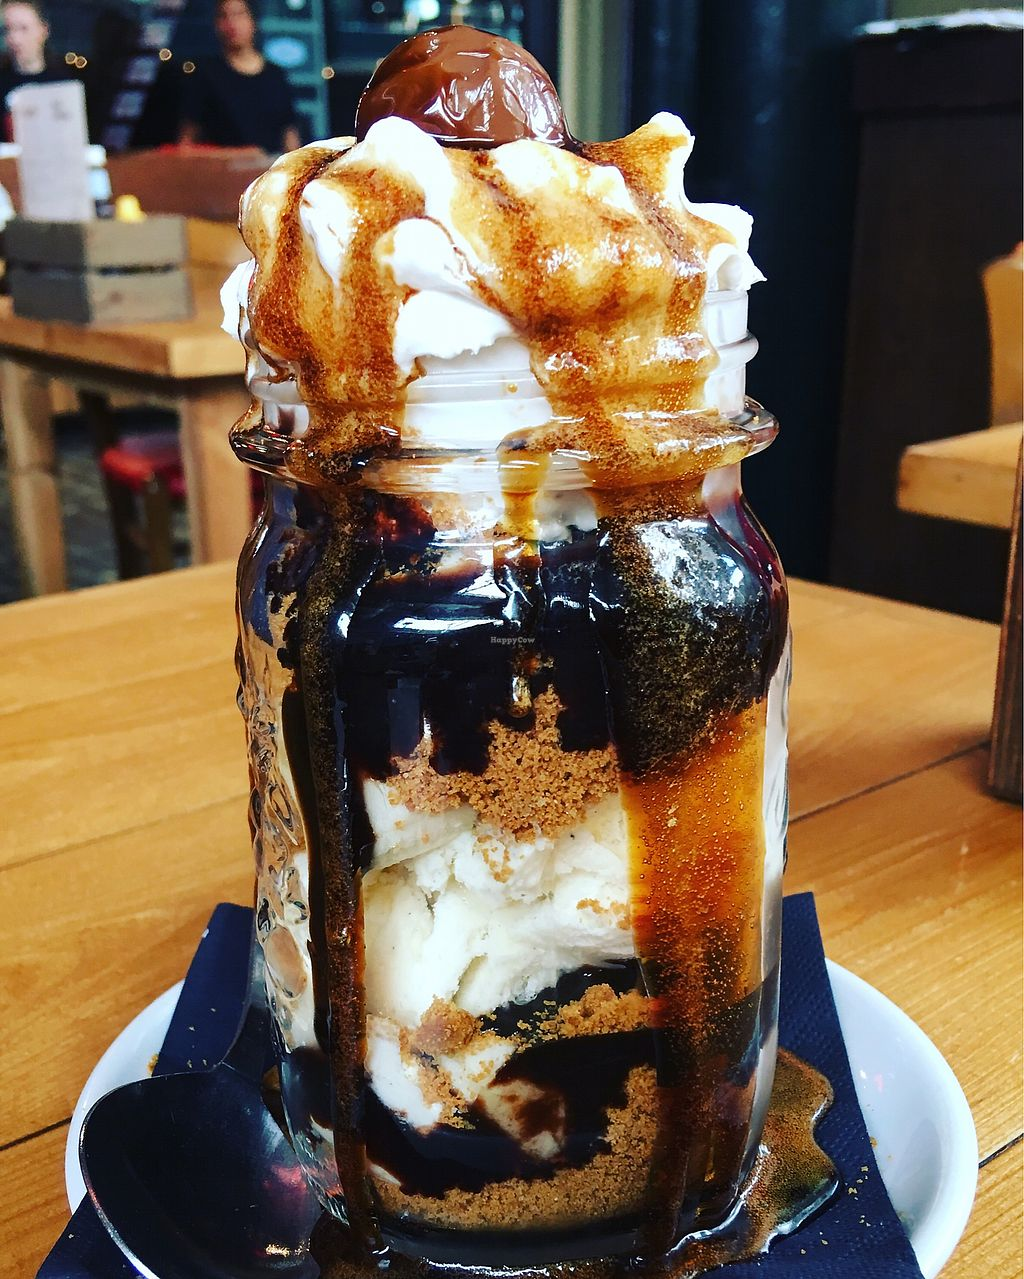 """Photo of Steak Cattle & Roll - Sauchiehall St  by <a href=""""/members/profile/HeatherWalsh"""">HeatherWalsh</a> <br/>Yummy vegan banoffi sundae!  <br/> July 27, 2017  - <a href='/contact/abuse/image/76751/285683'>Report</a>"""